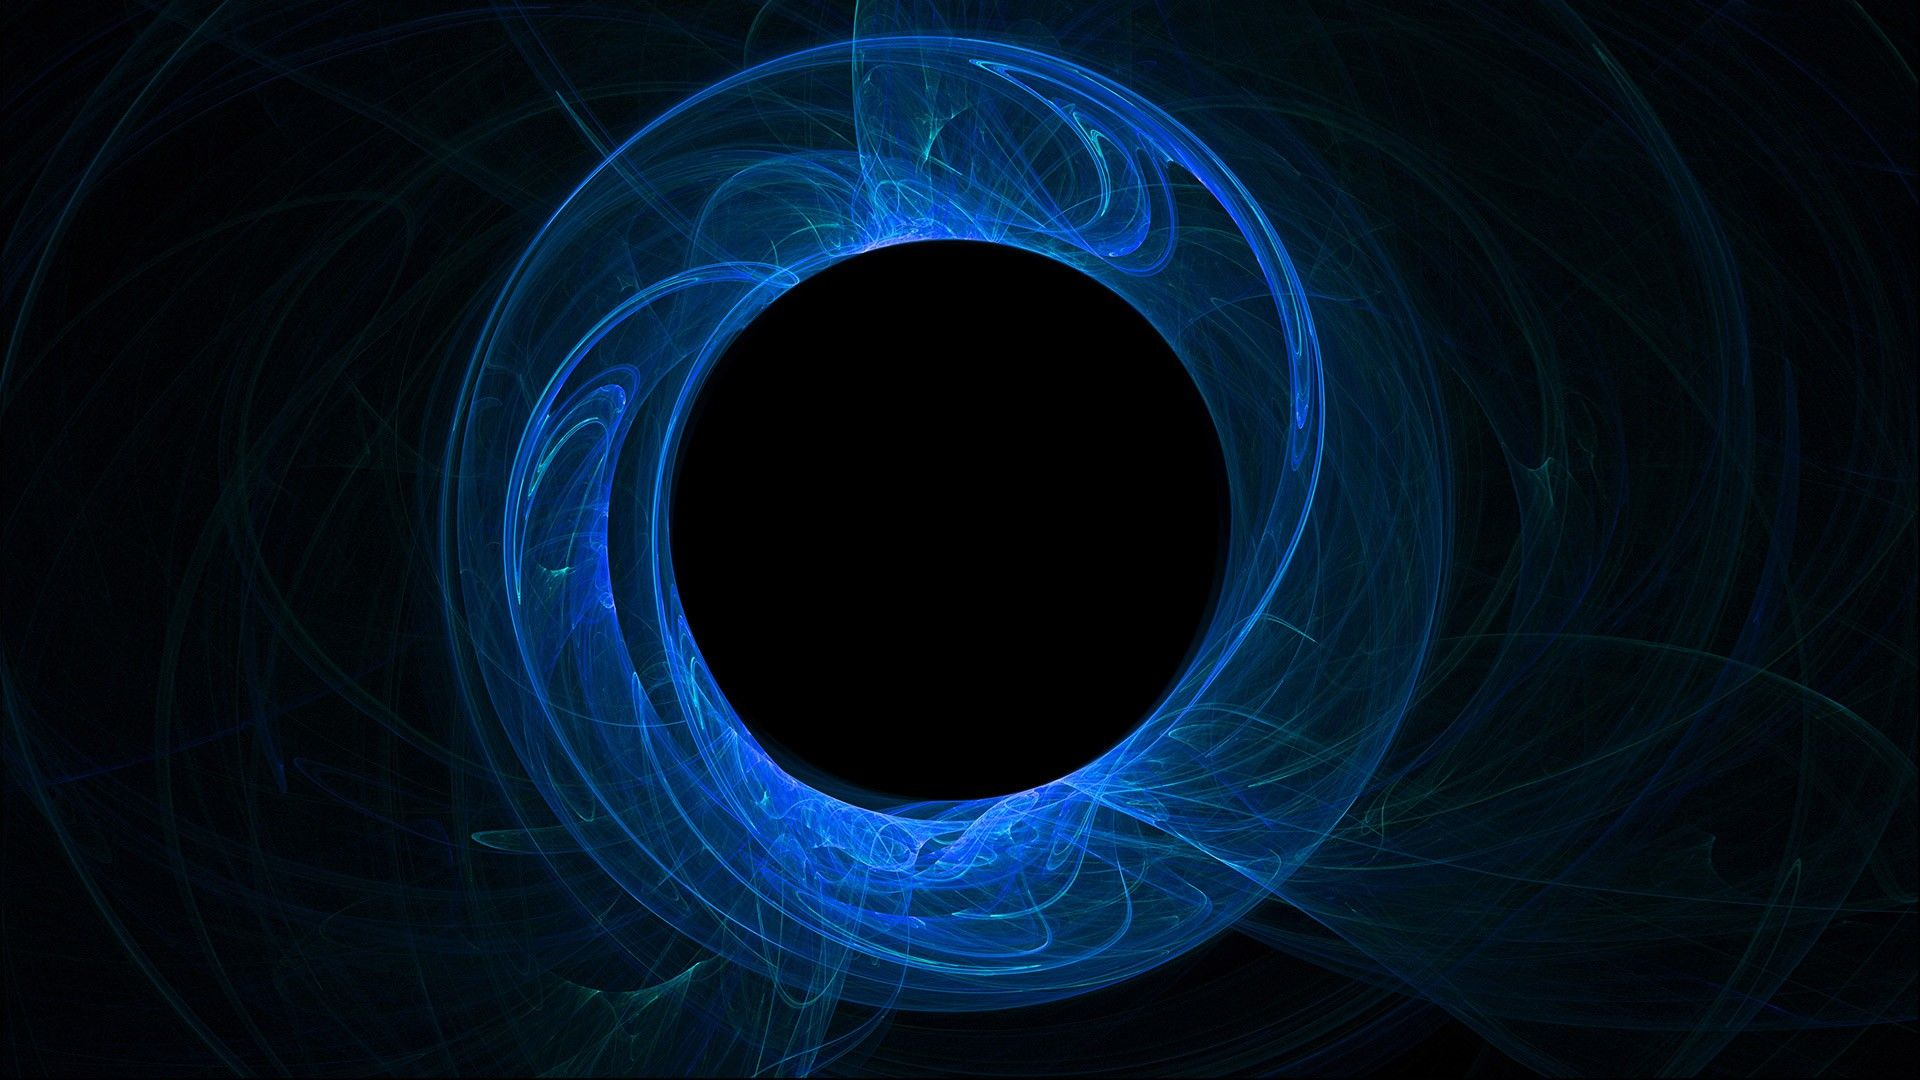 1920x1080 Cortana wallpaper ·① Download free awesome HD backgrounds ...